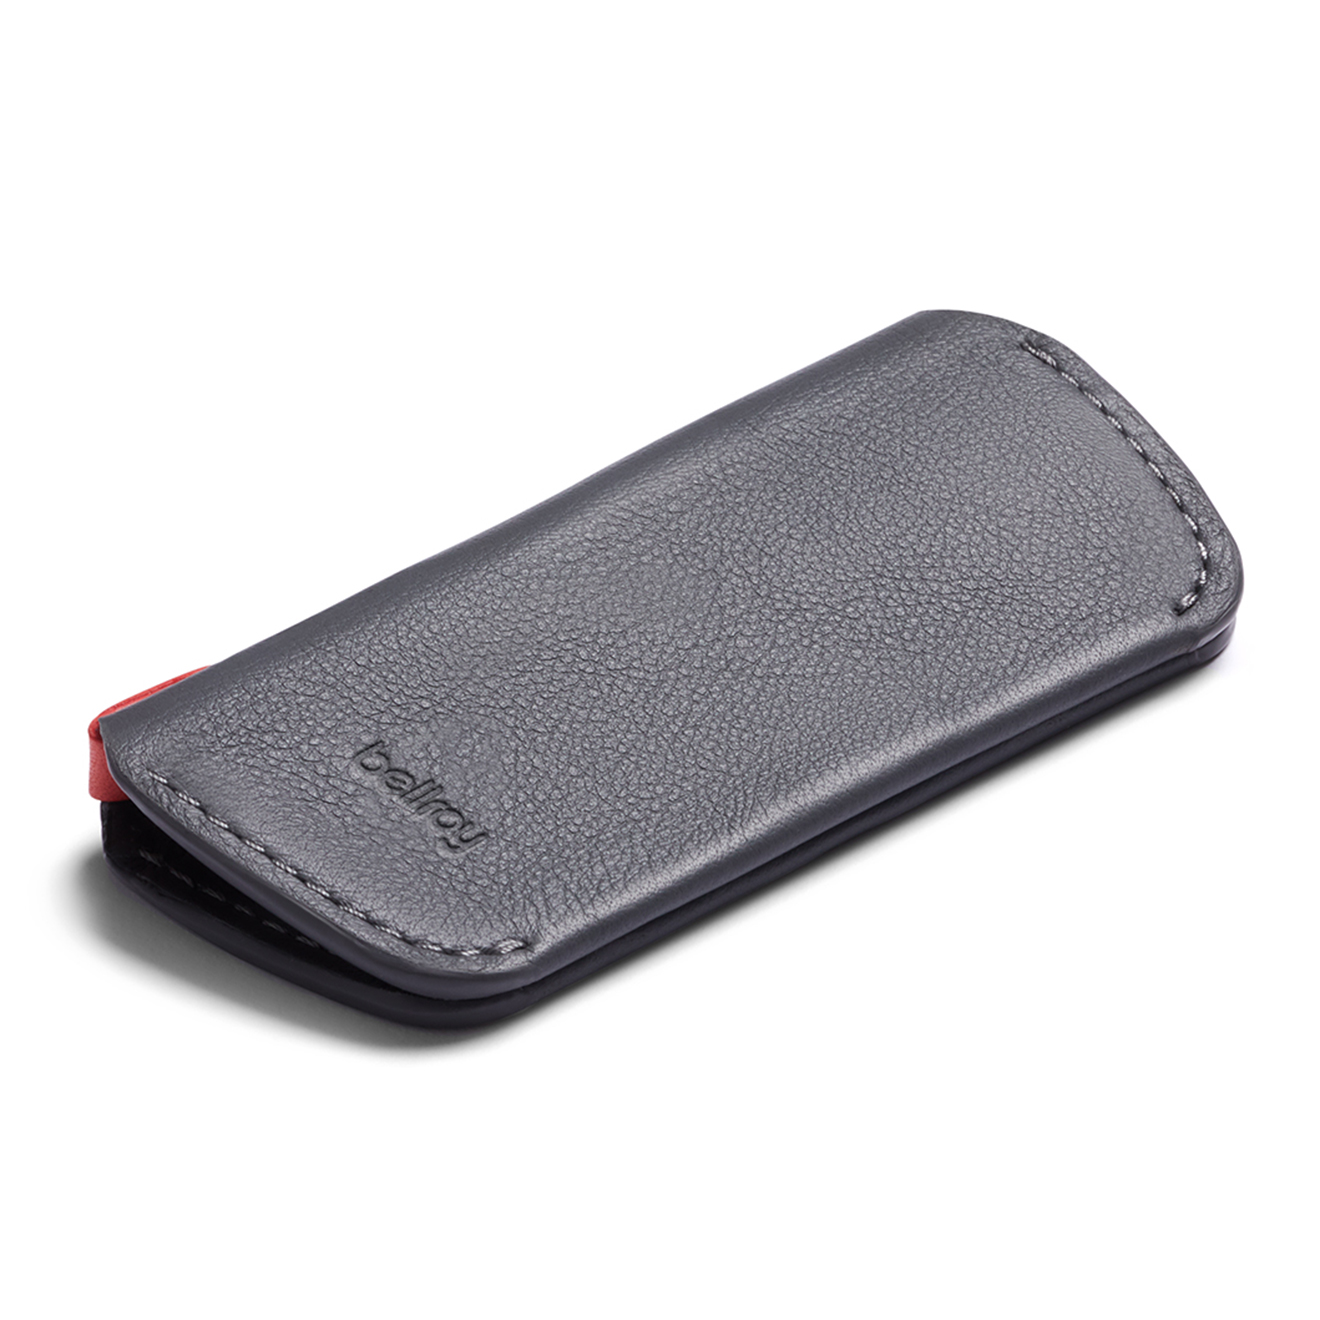 SALE 20/% OFF!! Bellroy Key Cover Plus 2nd Edition Black